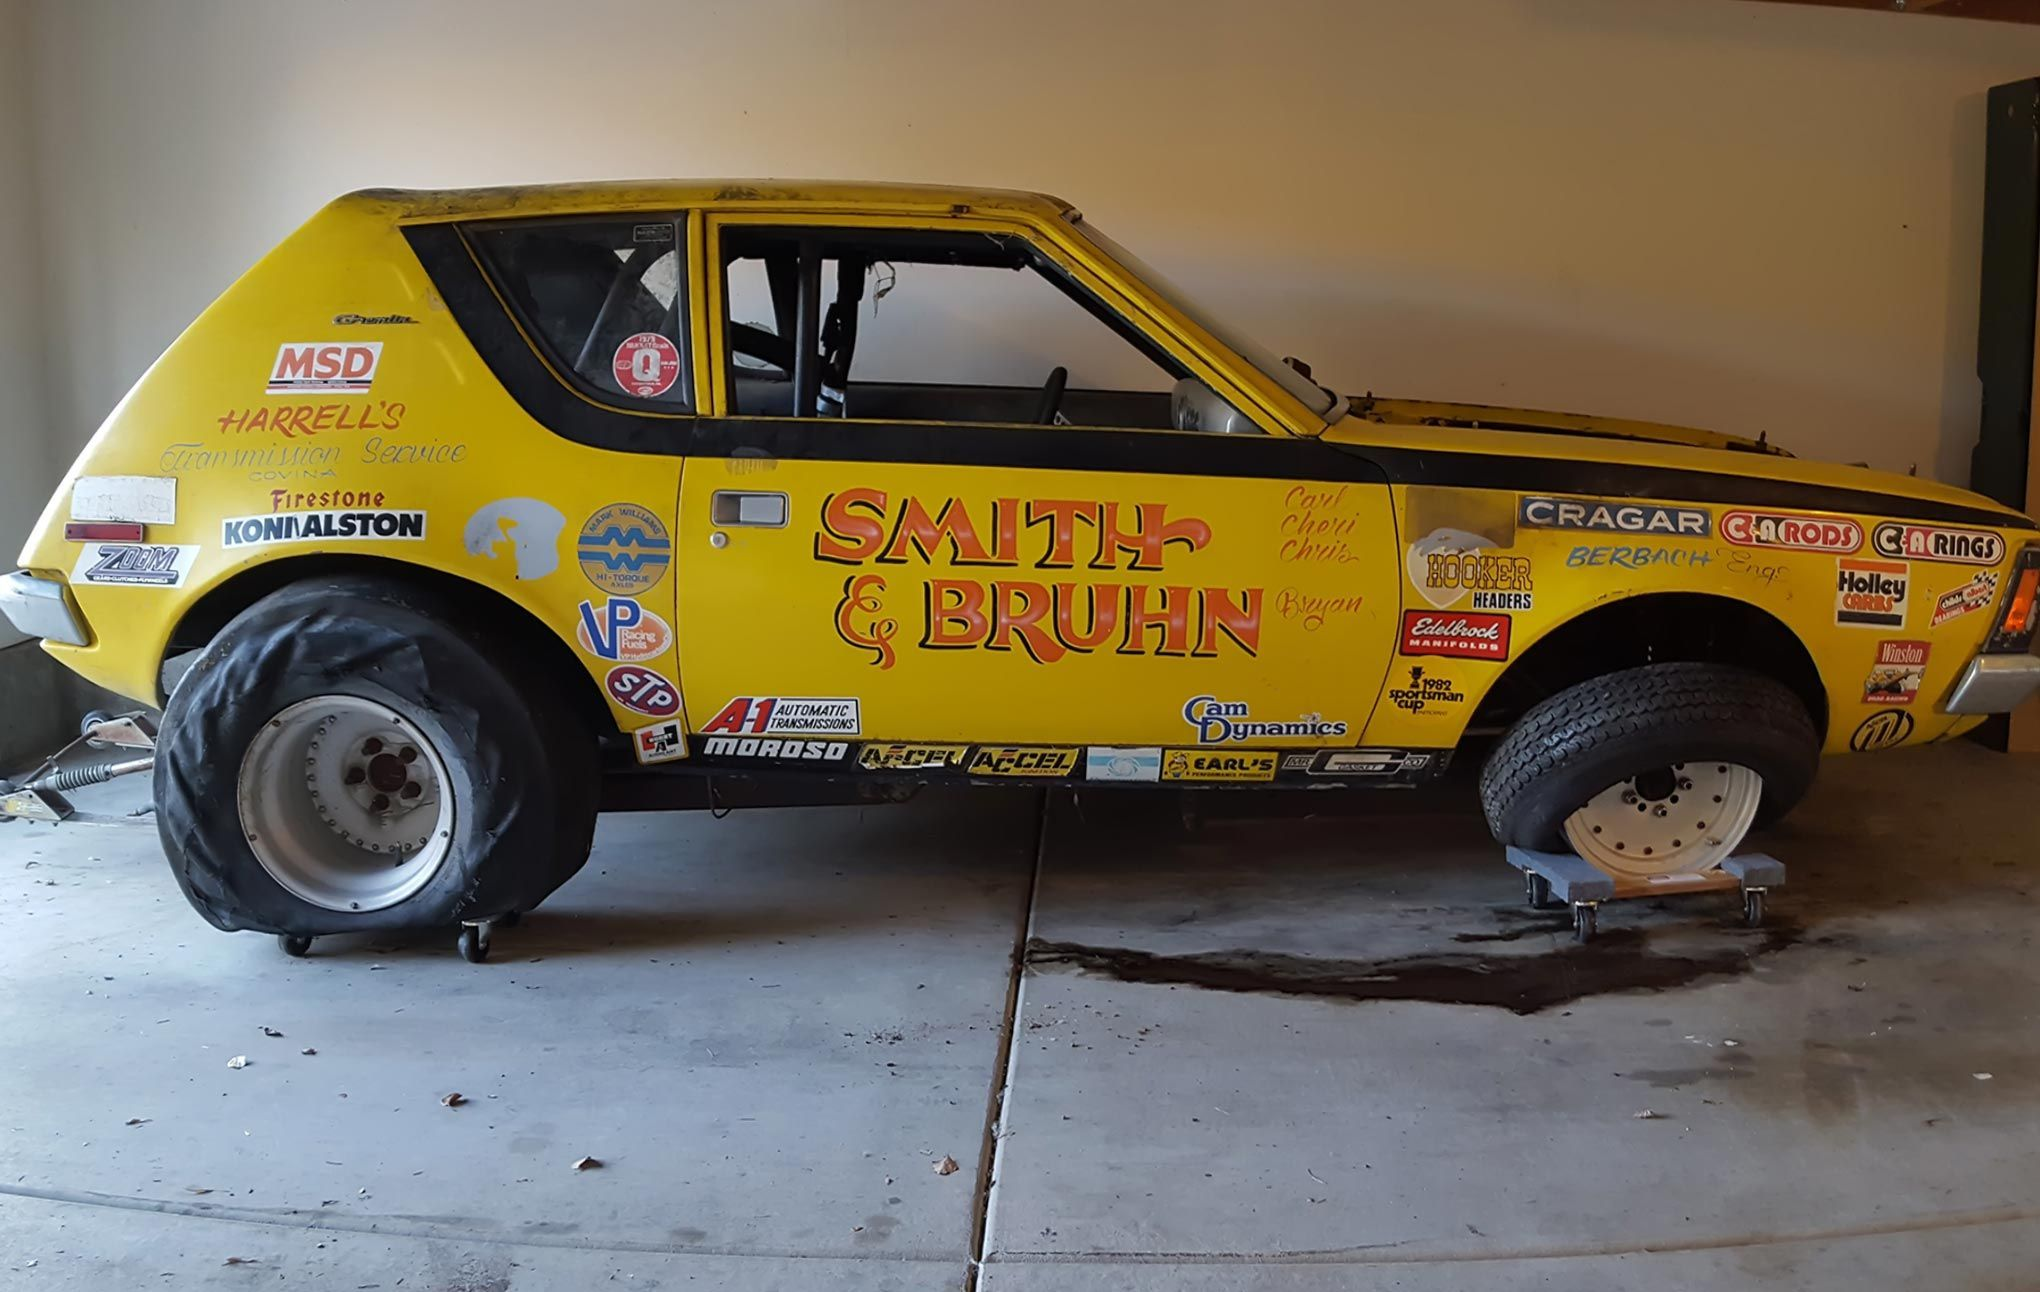 1970 Gremlin drag car Craigslist find | AMC | Drag cars, Amc